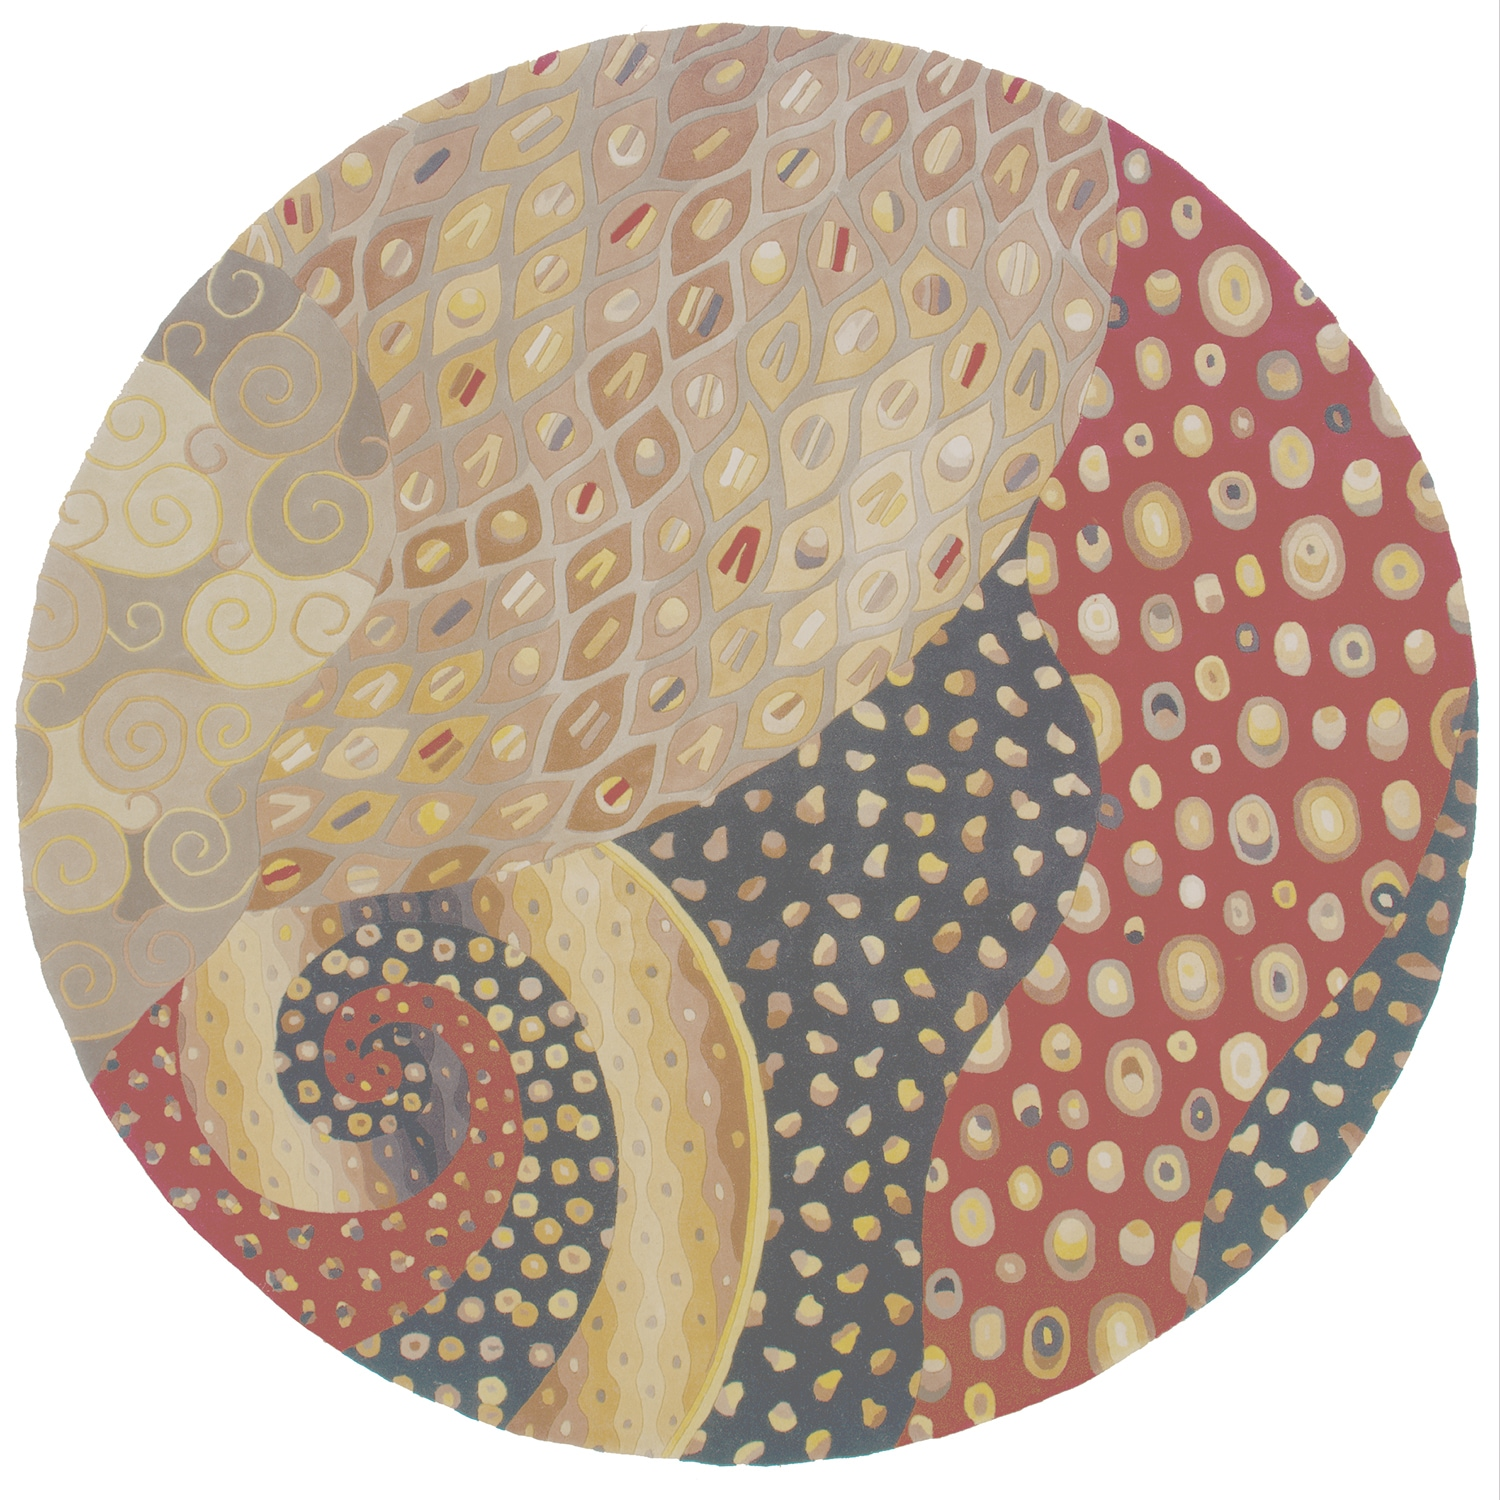 Momeni New Wave Multicolor Hand-Tufted and Hand-Carved Wool Rug (79 X 79 Round) (Natural - 79 x 79 Round)